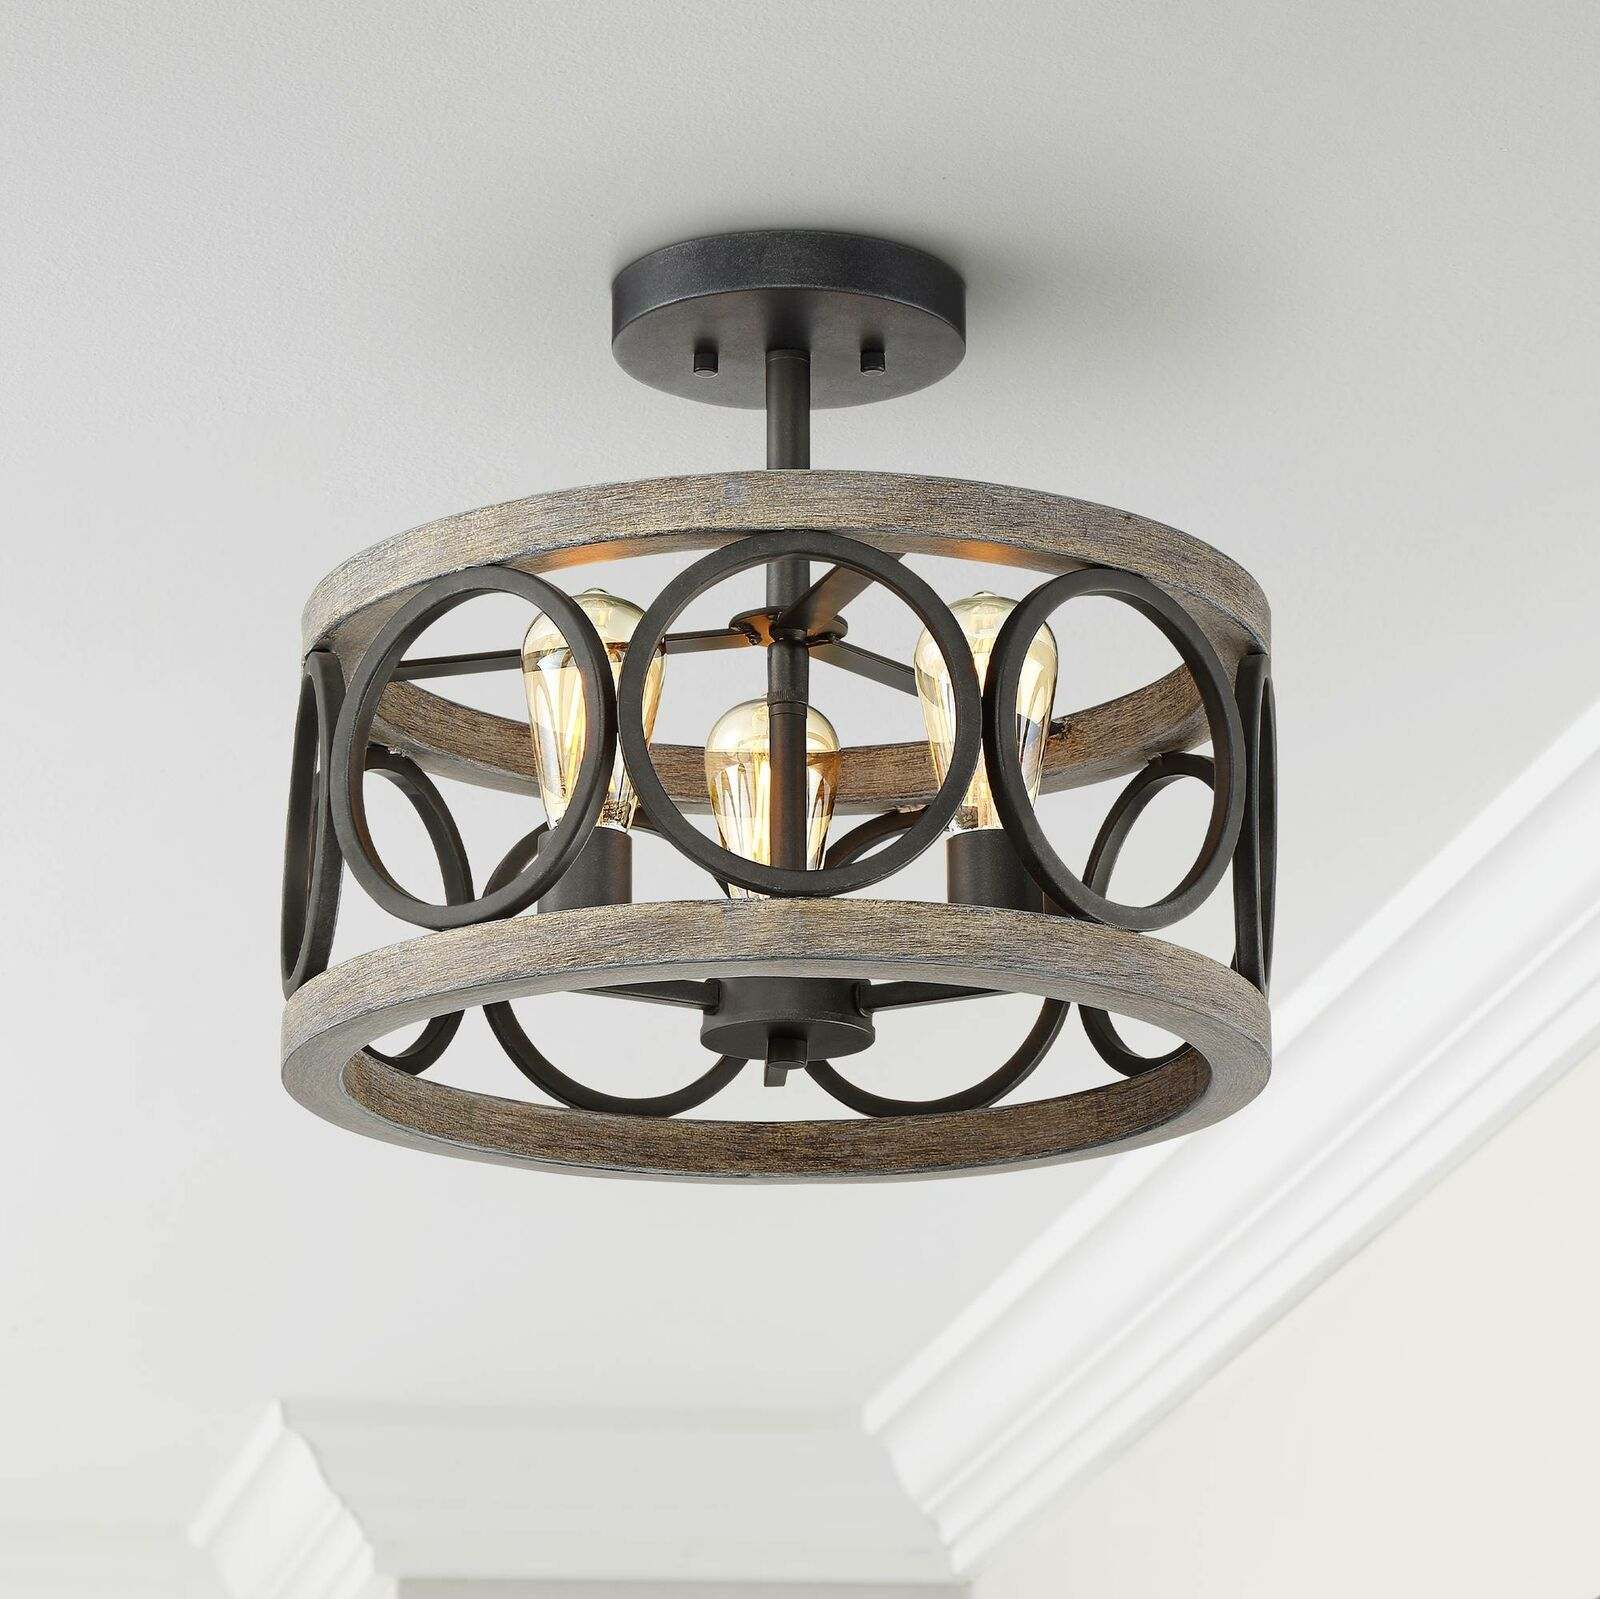 Farmhouse Ceiling Light Semi Flush Mount Fixture Black Gray Wood